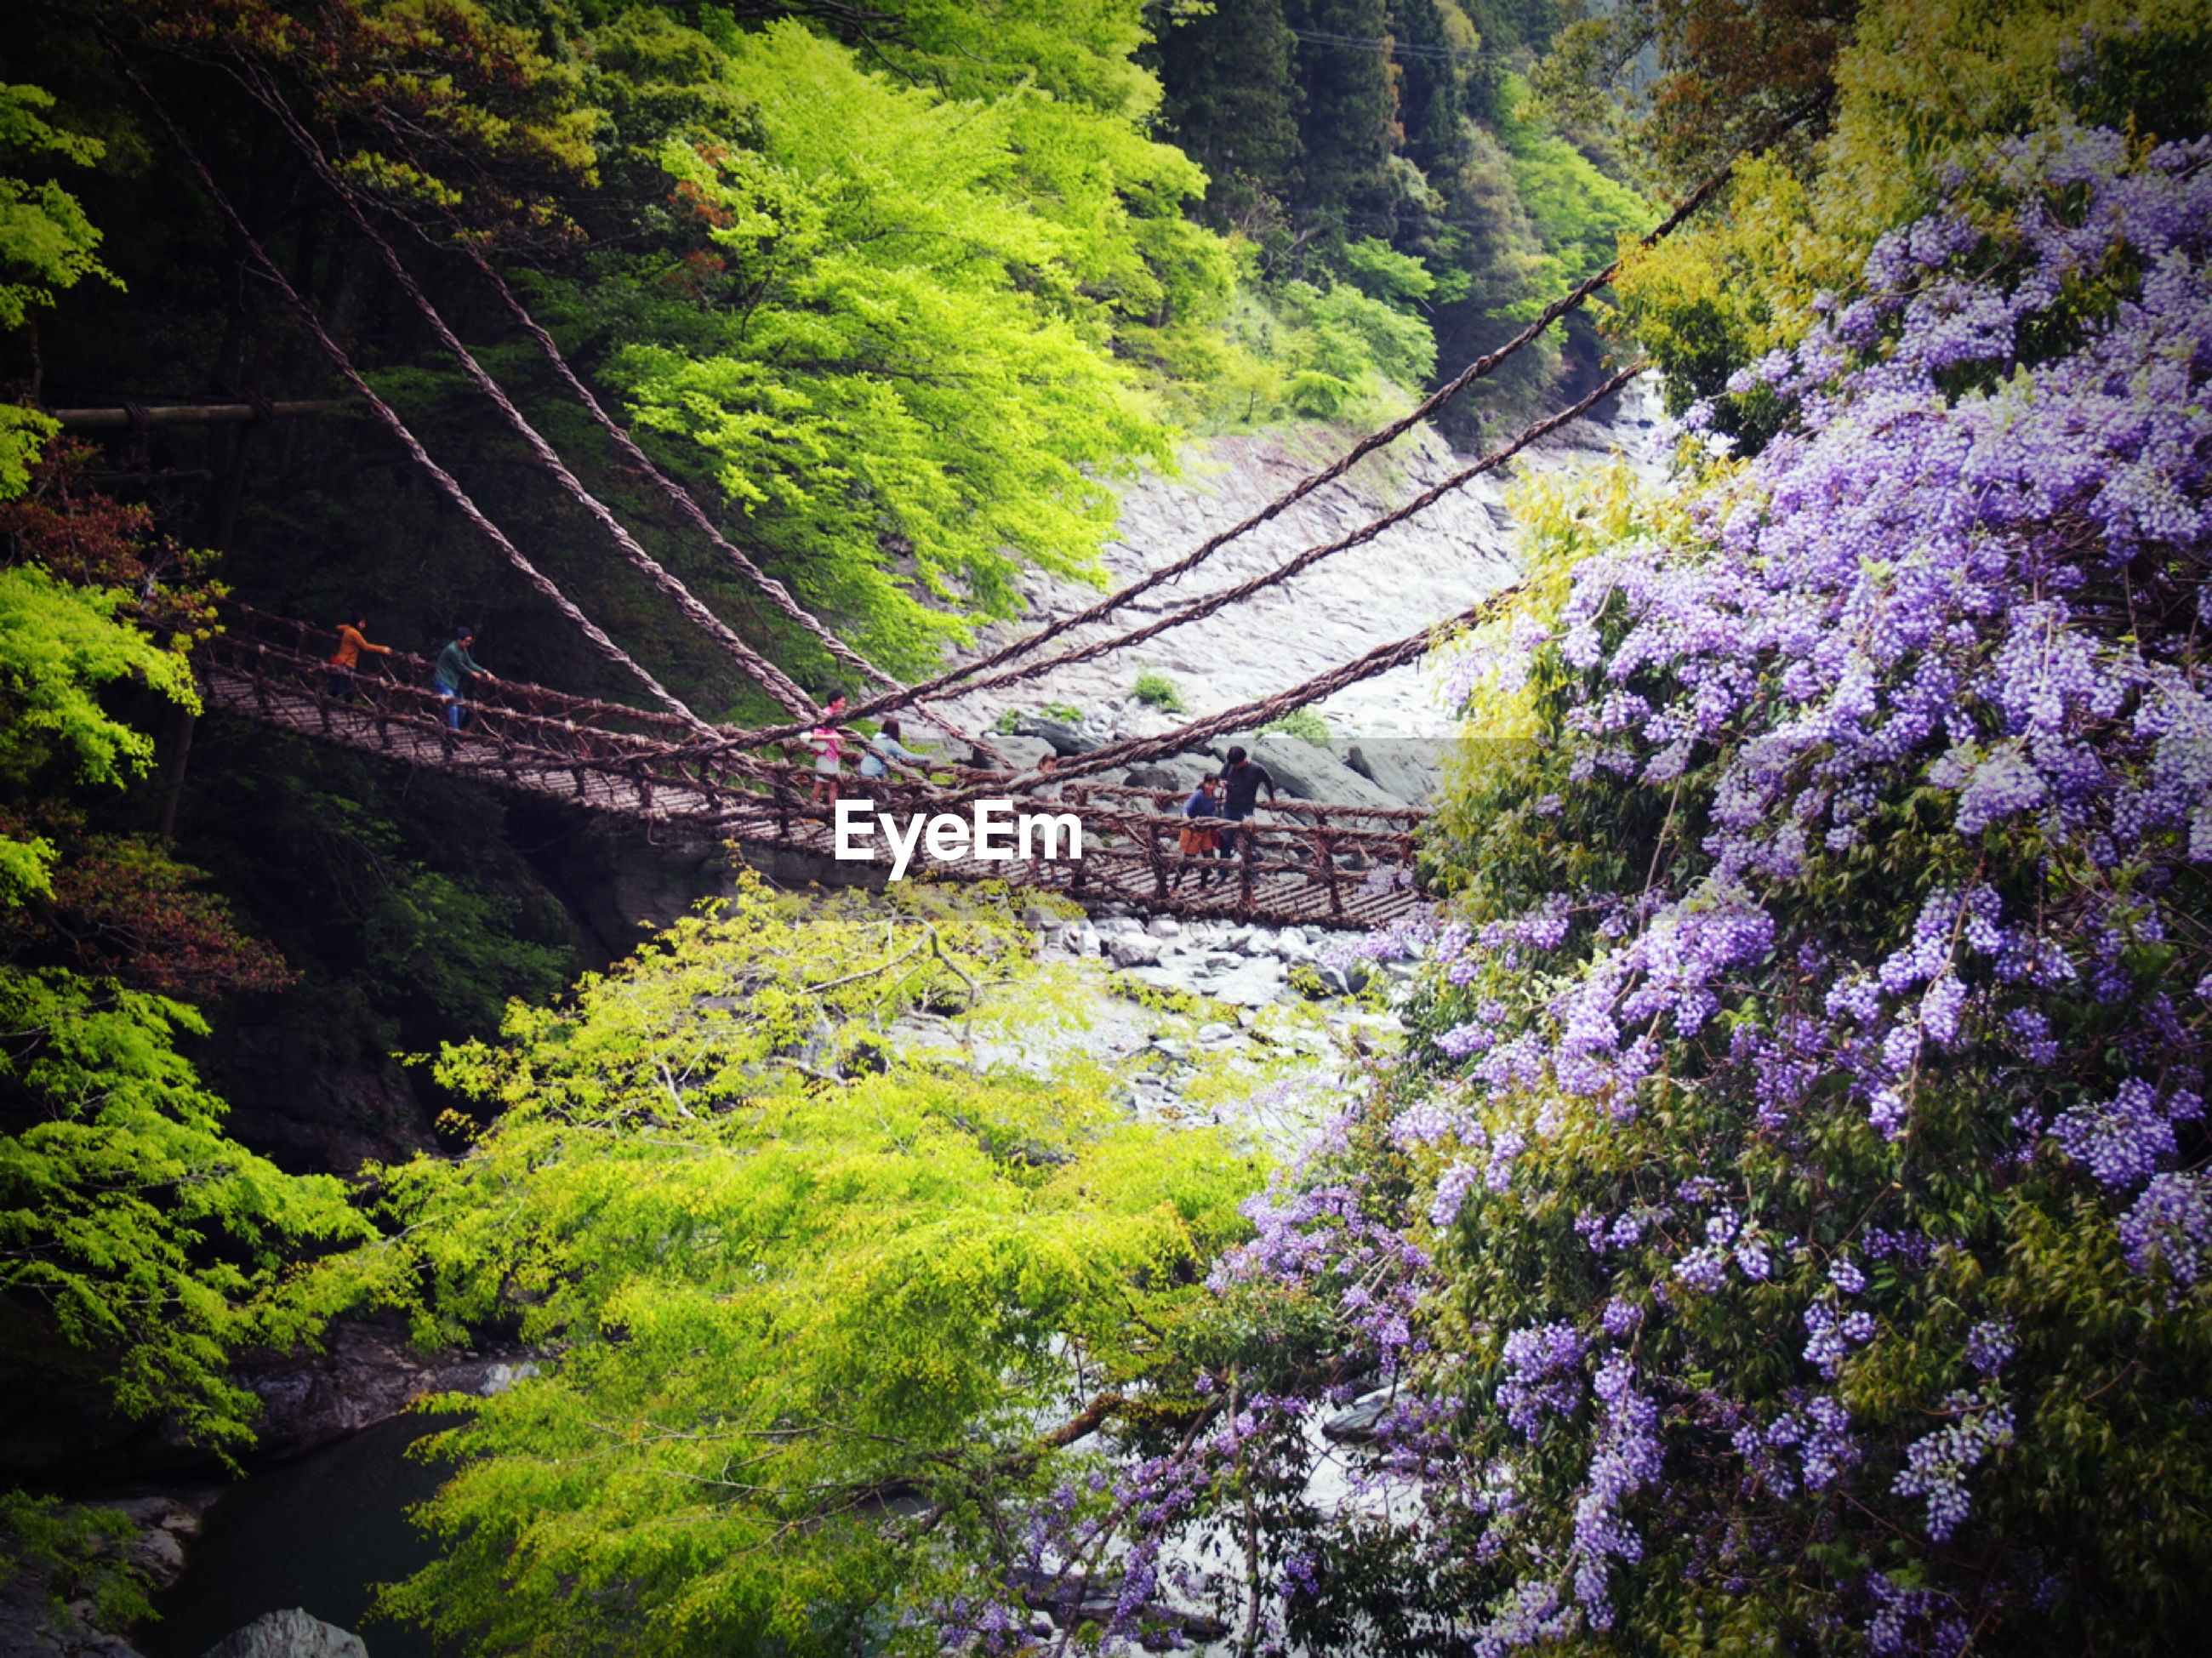 tree, connection, transportation, bridge - man made structure, growth, green color, plant, flower, nature, built structure, footbridge, day, forest, travel, high angle view, bridge, beauty in nature, lush foliage, railing, outdoors